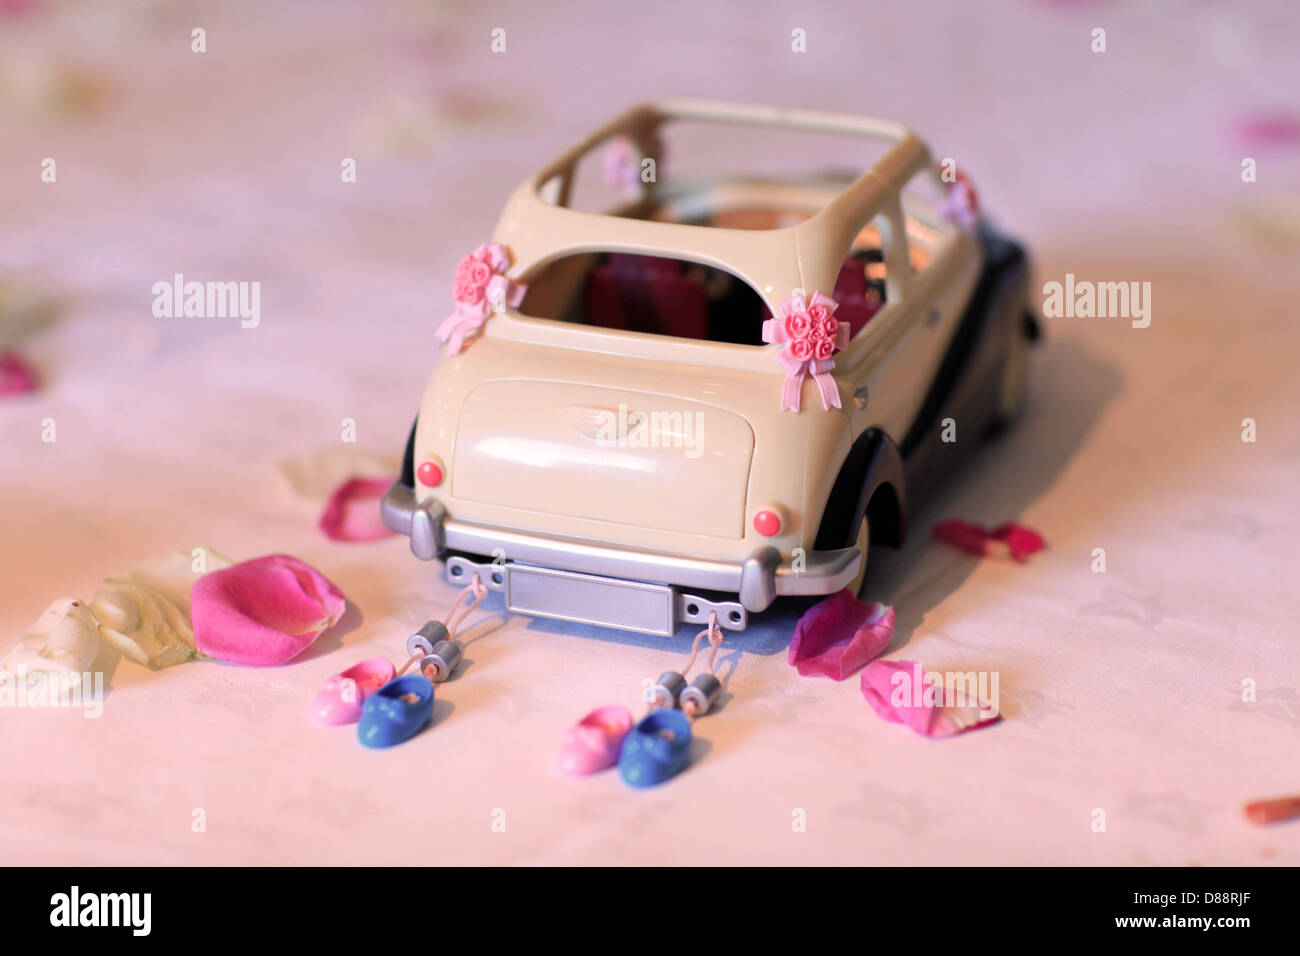 Just Married Car Cans Stock Photos & Just Married Car Cans Stock ...